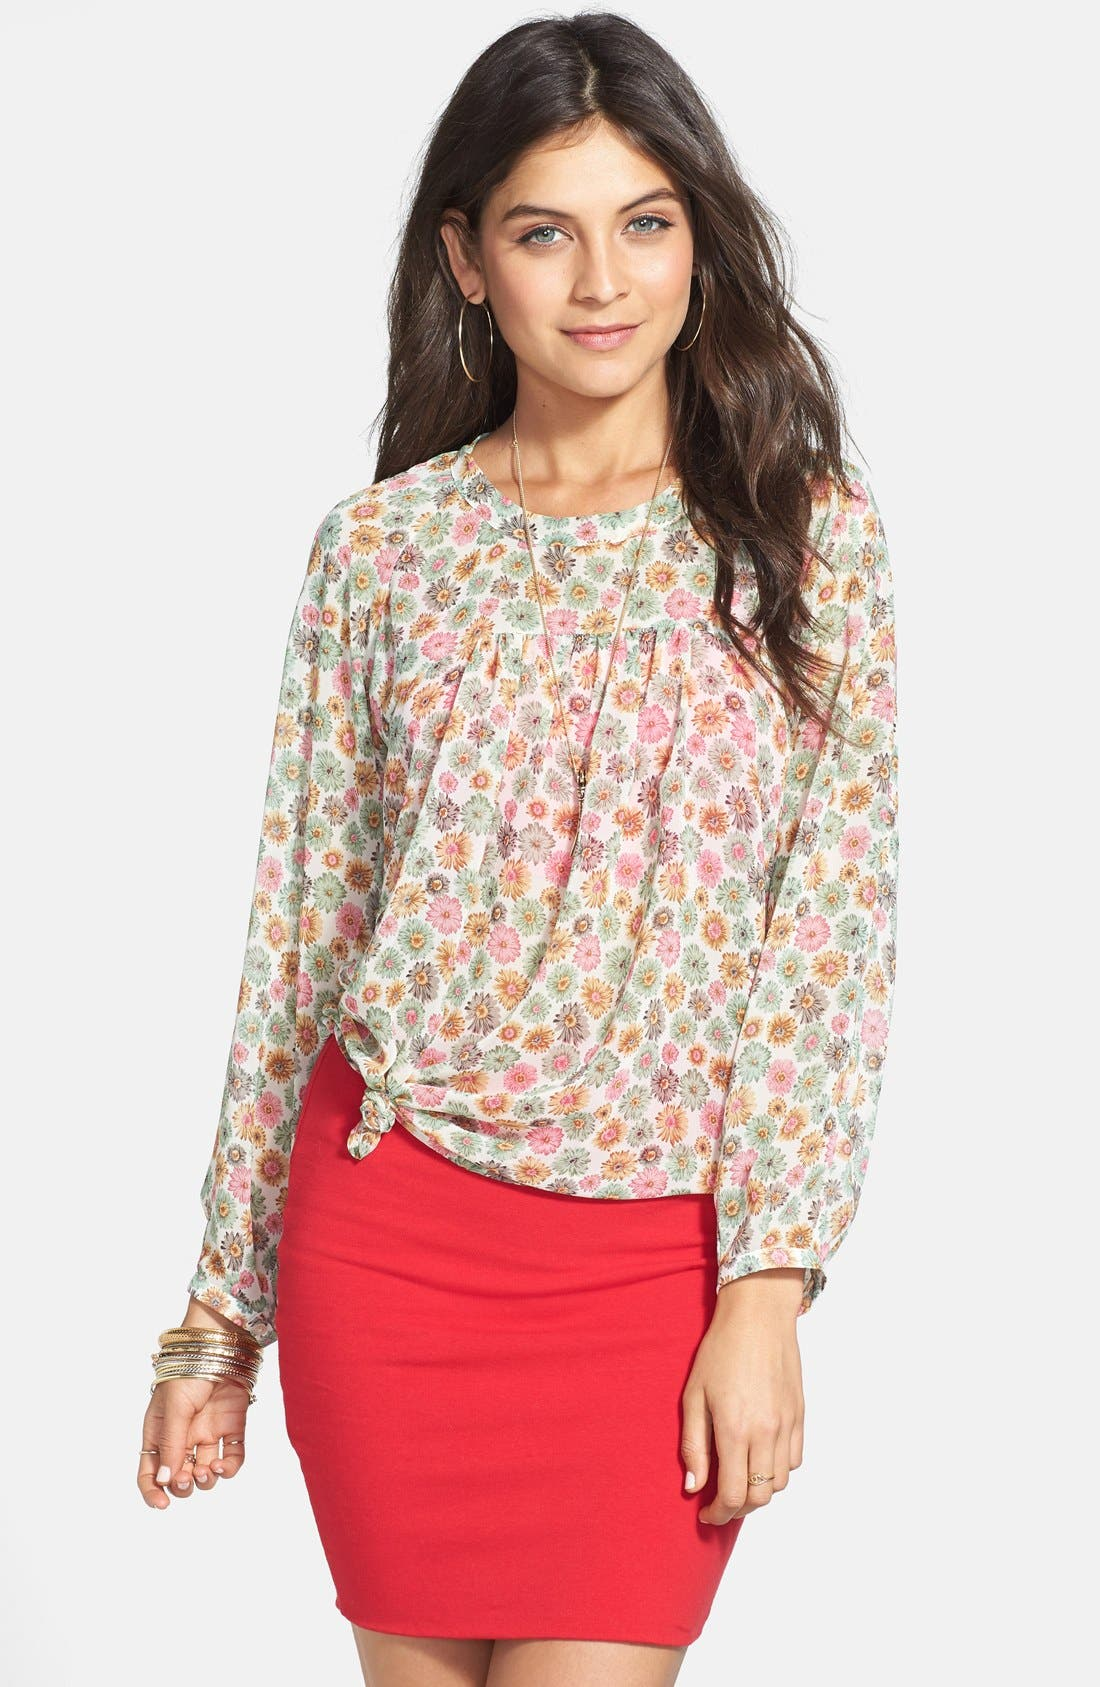 Alternate Image 1 Selected - Elodie Floral Print Gathered Yoke Blouse (Juniors)